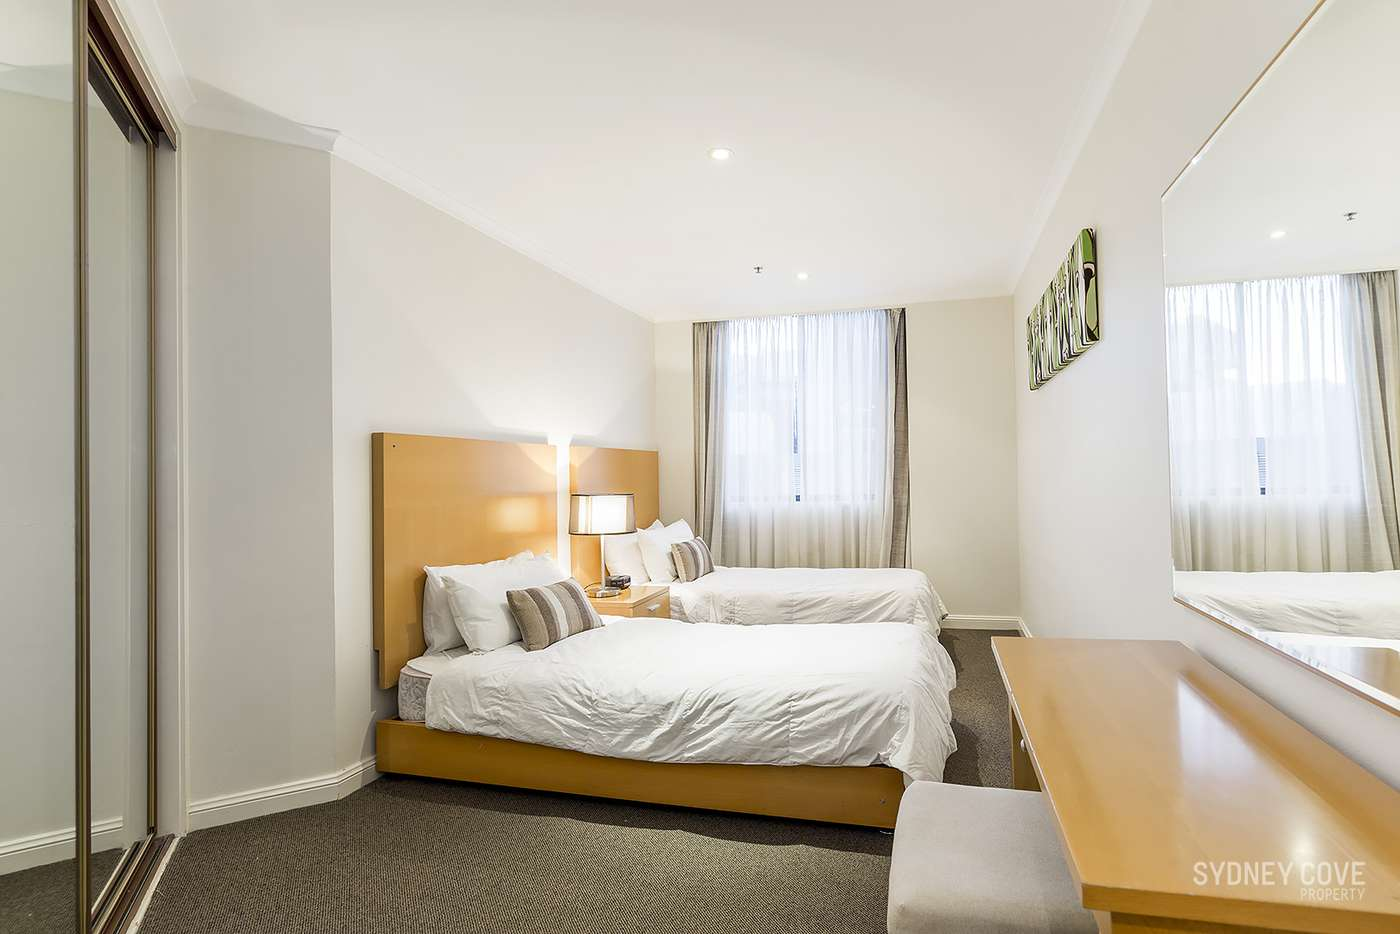 Sixth view of Homely apartment listing, 5 York St, Sydney NSW 2000